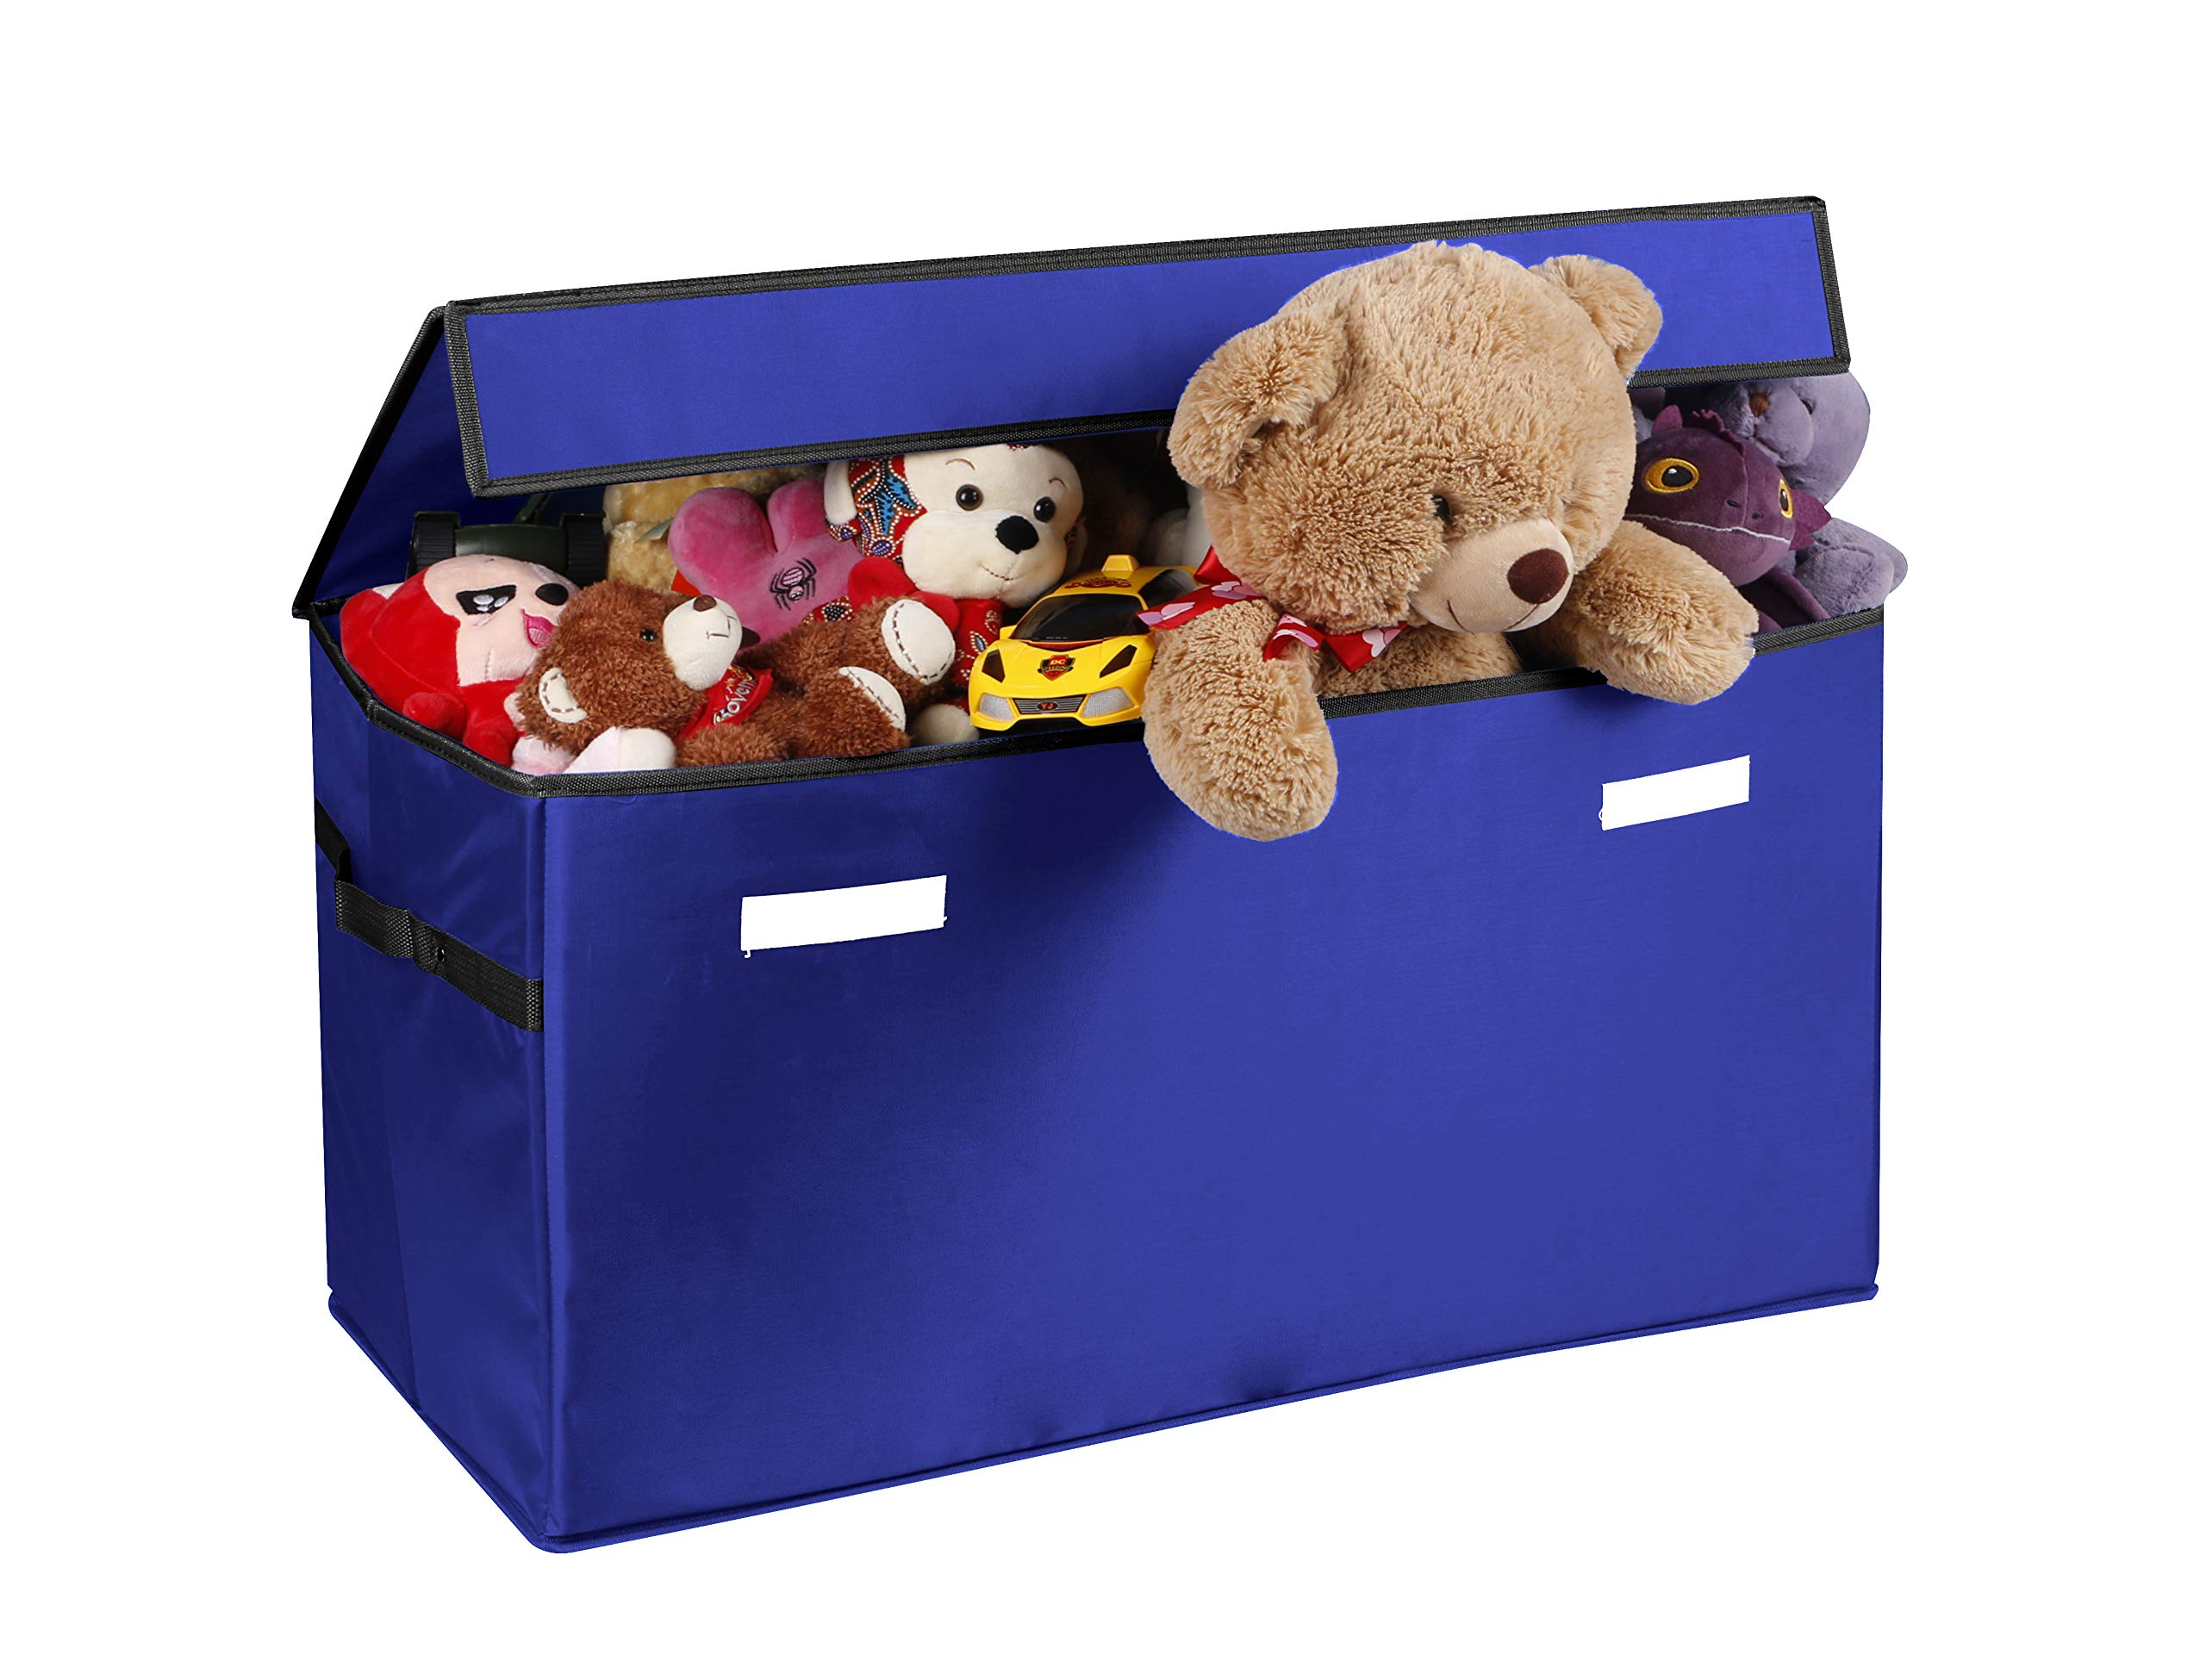 Cute Animal Collapsible Toy Storage Organizer Folding: Amazon.com: Strong Collapsible Toy Chest Box [Largest